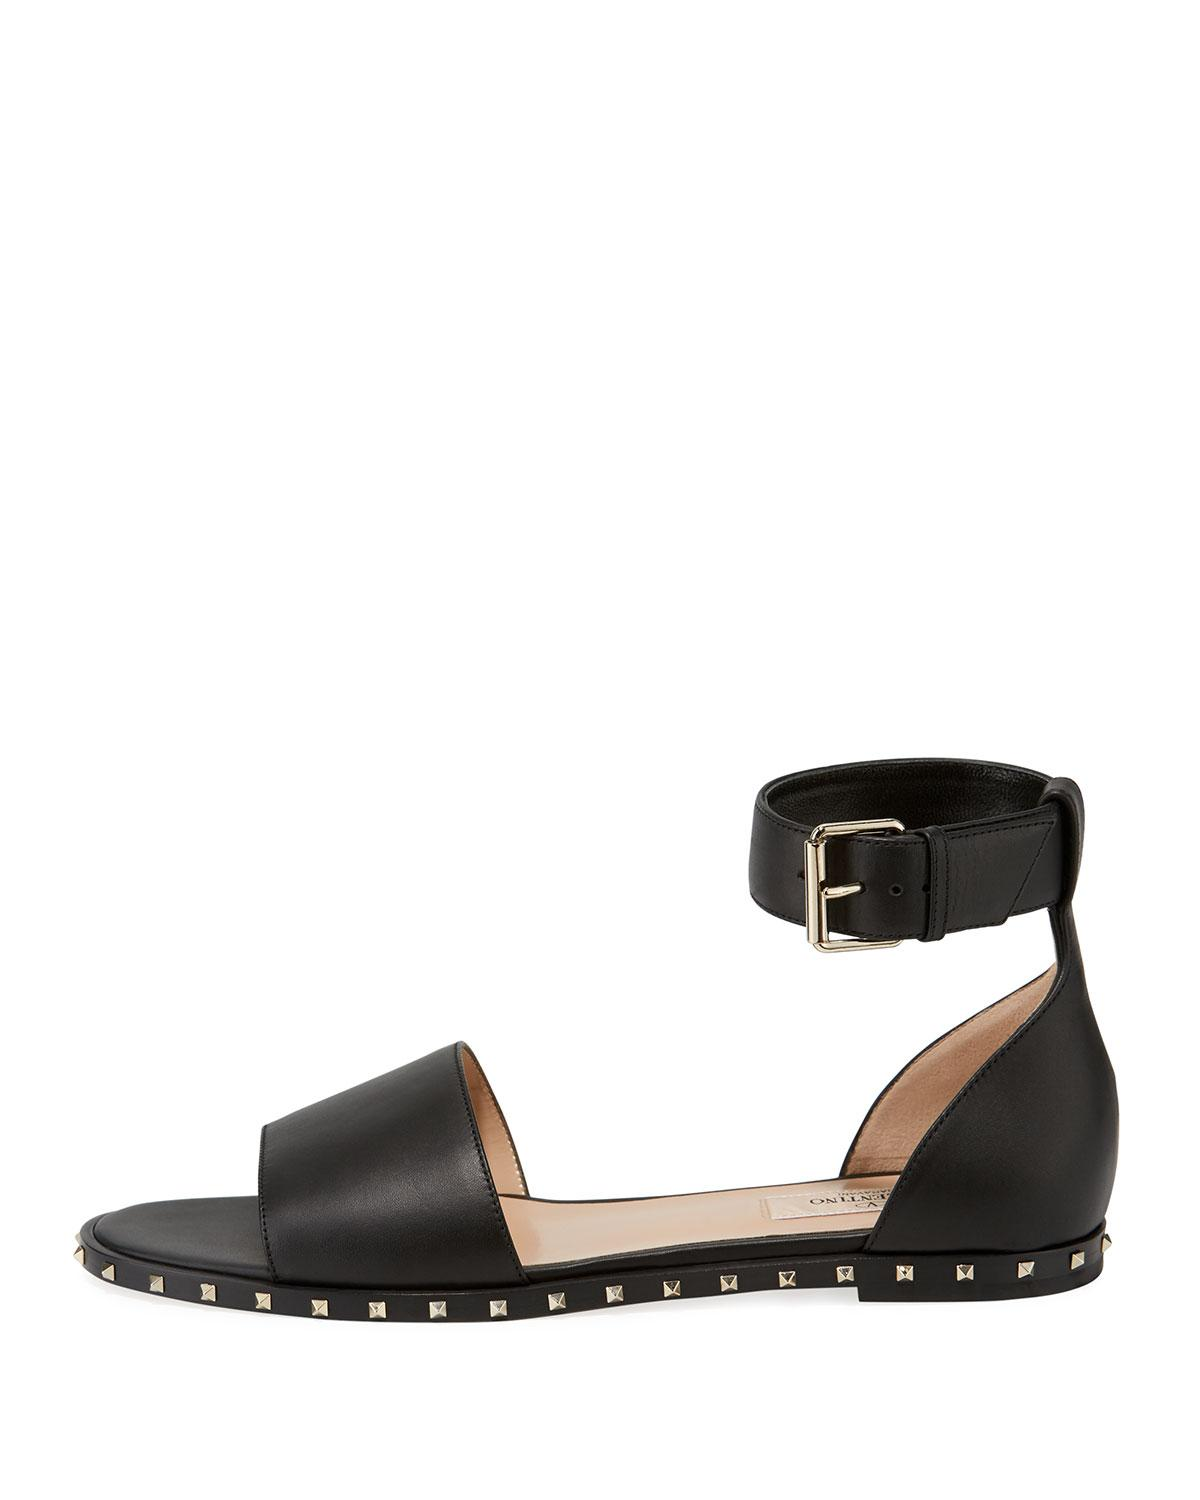 d478e3c73c70 Lyst - Valentino Rockstud Leather Ankle-strap Flat Sandals in Black - Save  6.71641791044776%